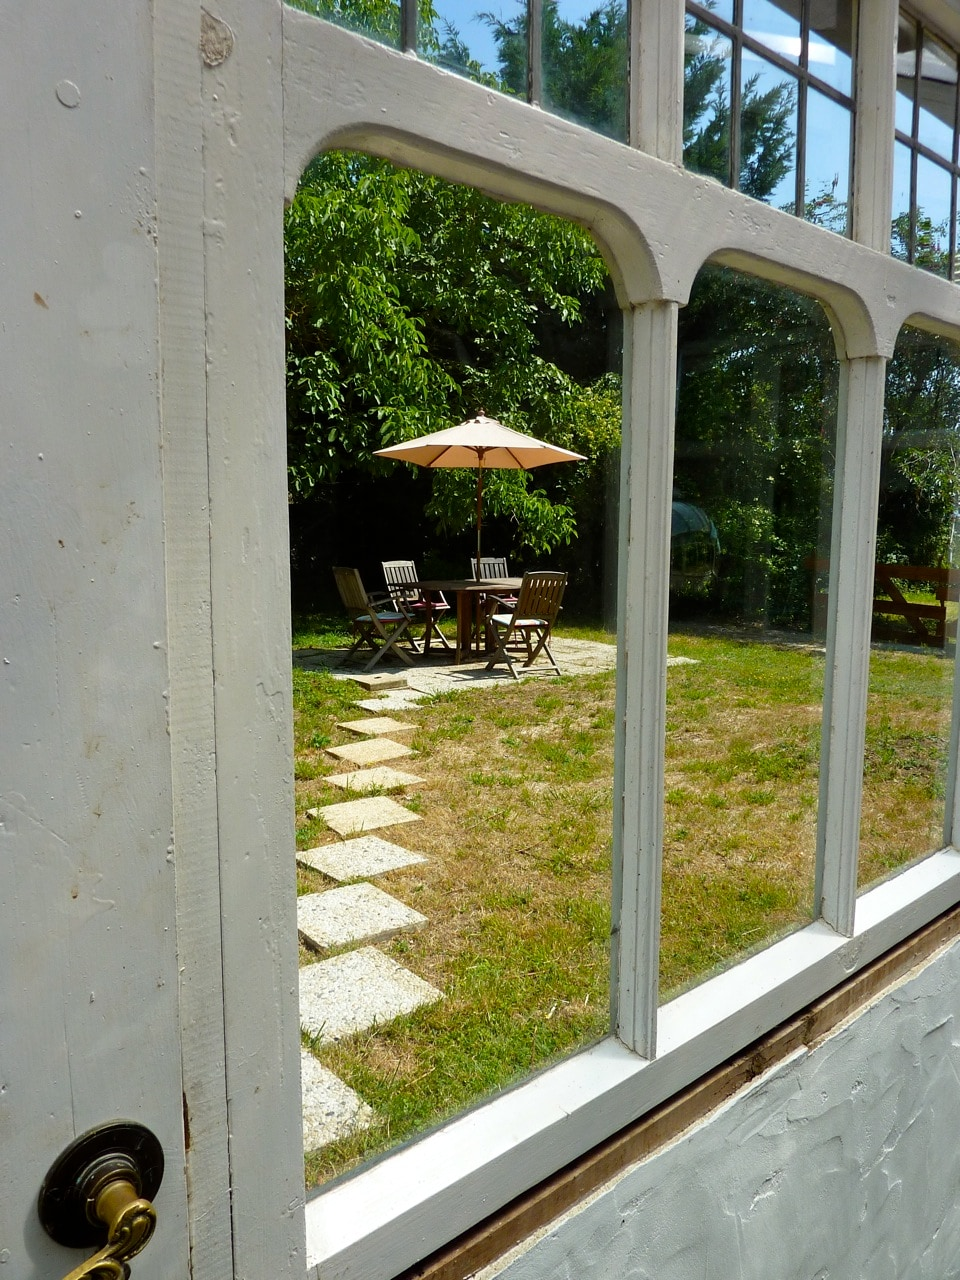 View of the Garden through the conservatory